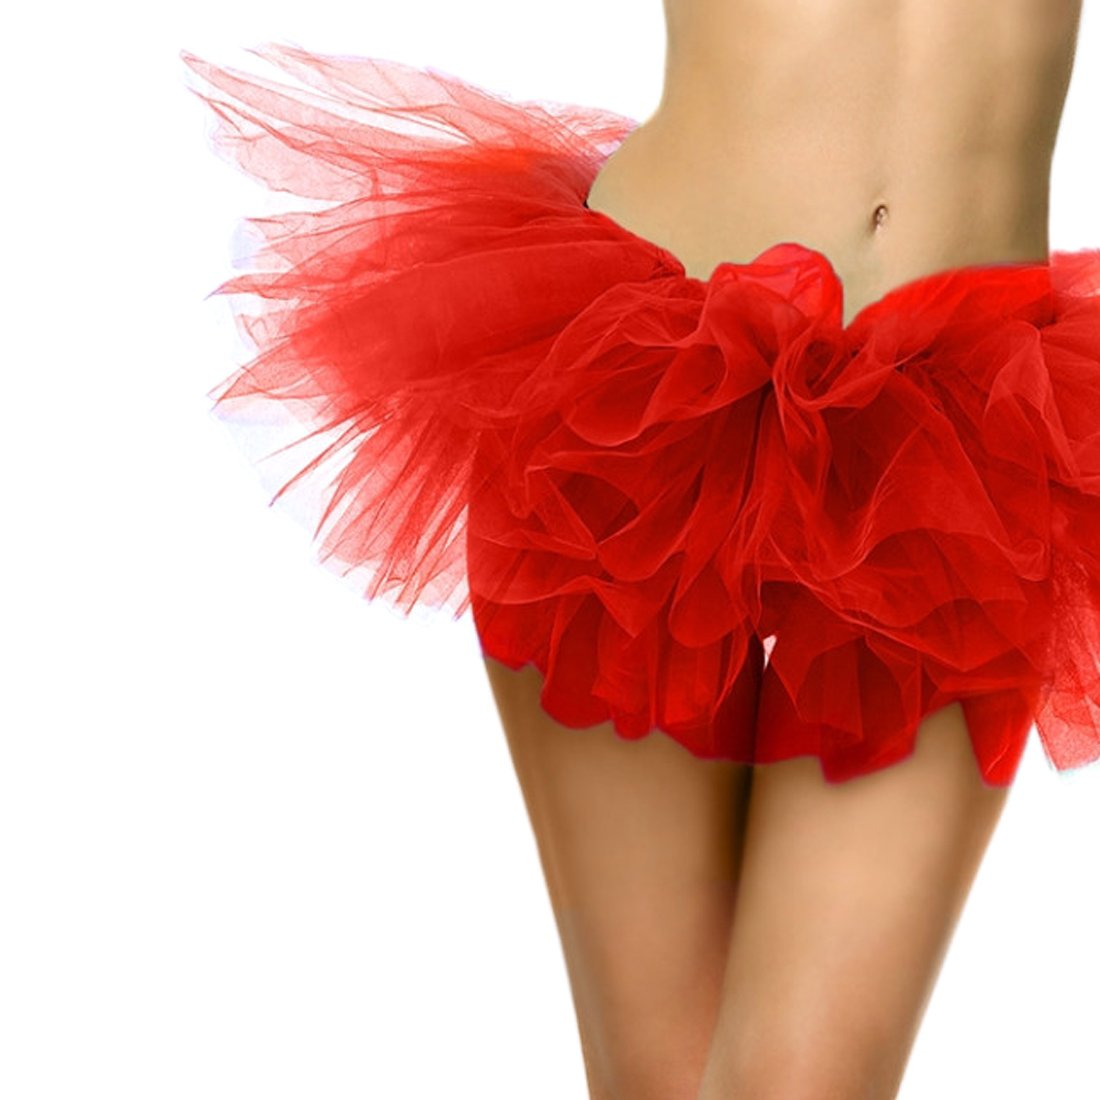 Slocyclub Adult Tutu Skirt Ladies Short Ballet Dance Dress 5 Layers colorful Puff Skirts by Slocyclub (Image #3)